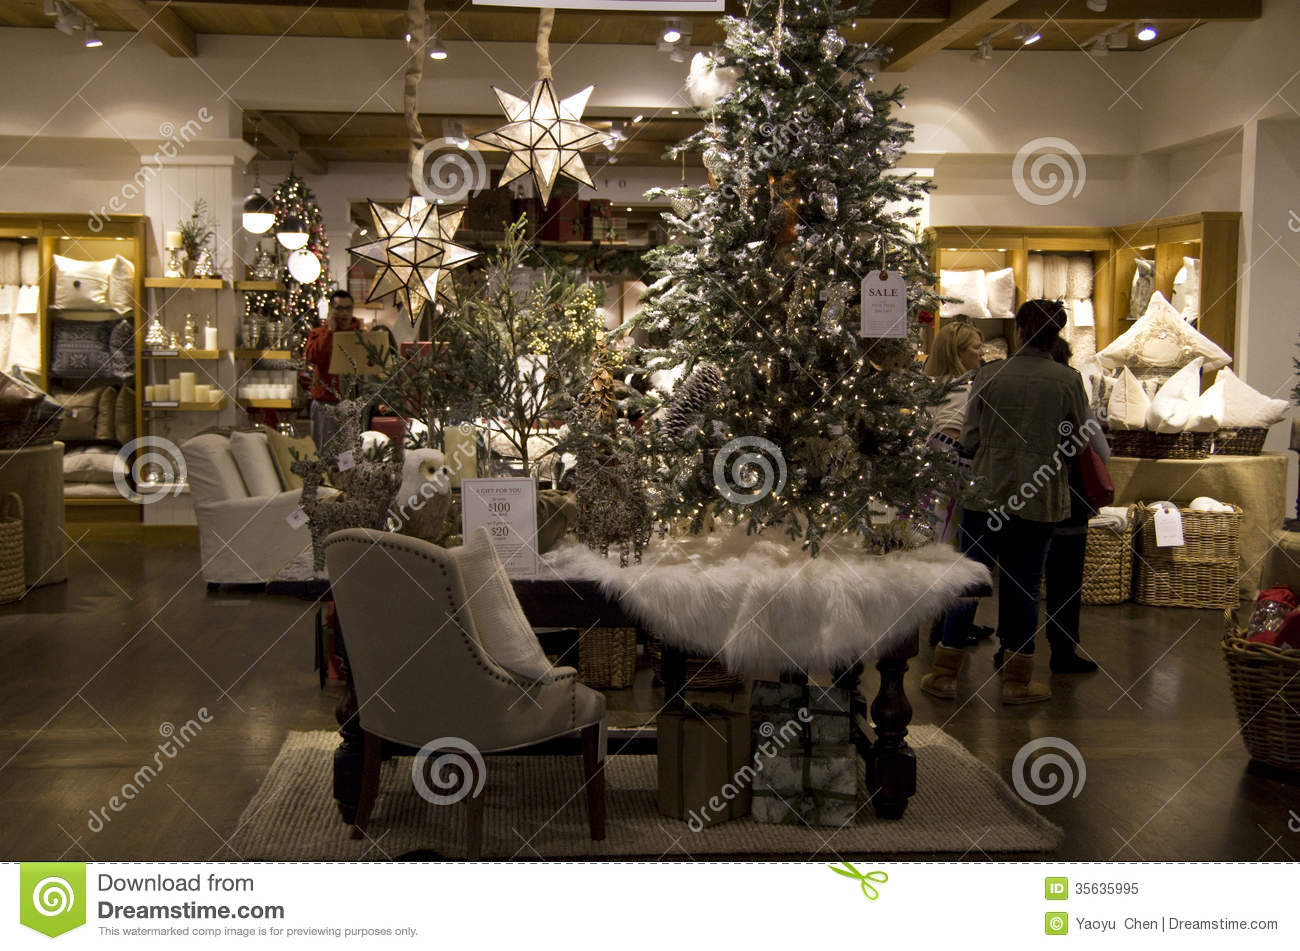 Christmas Trees Home Goods Decor Store Editorial Image - Image: 35635995